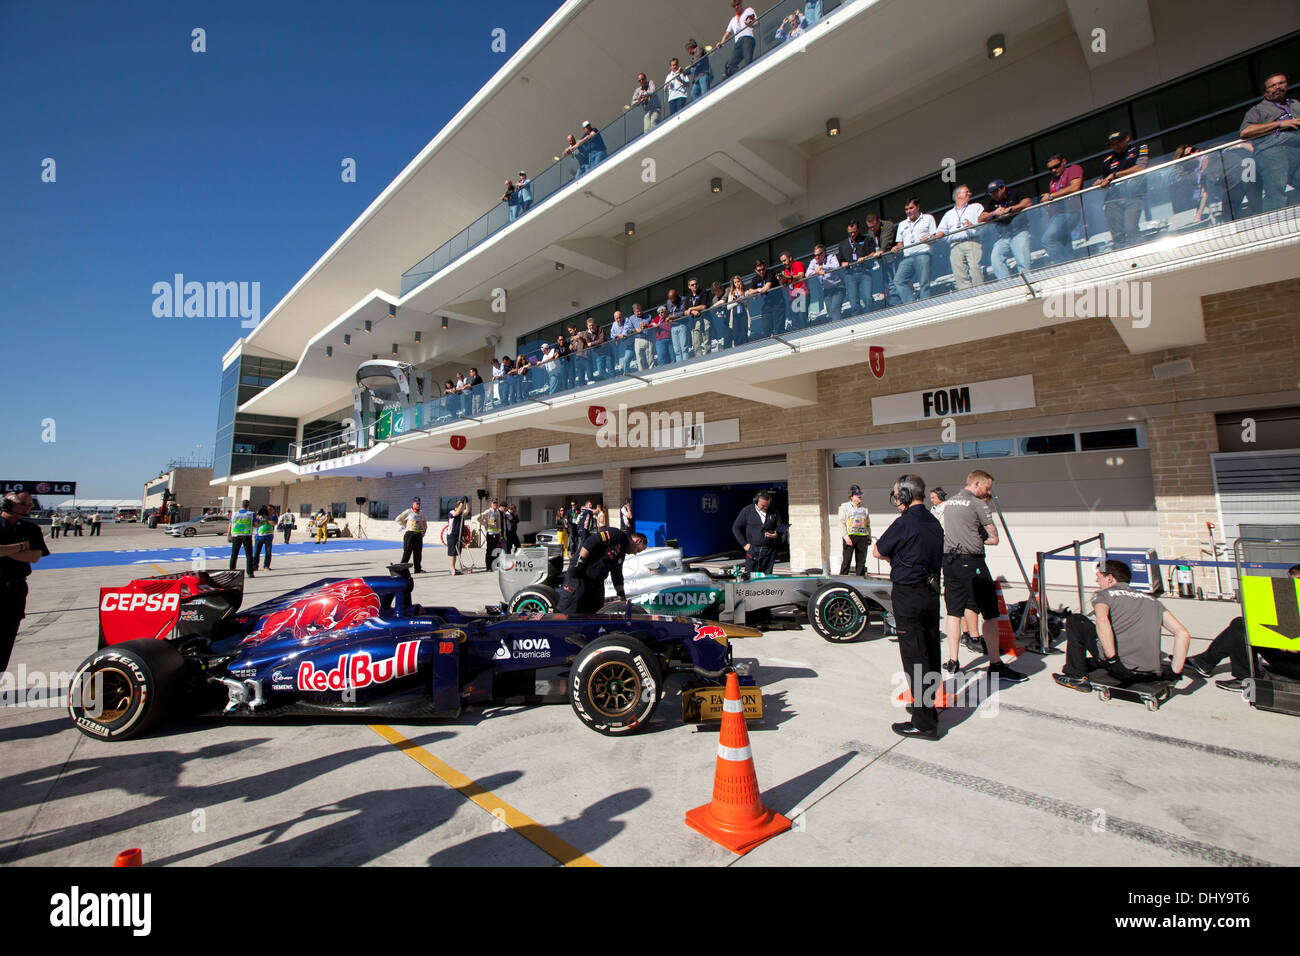 Scuderia Toro Rossi racing team car on pit row after a practice session for the Formula1 United States Grand Prix near Austin TX - Stock Image